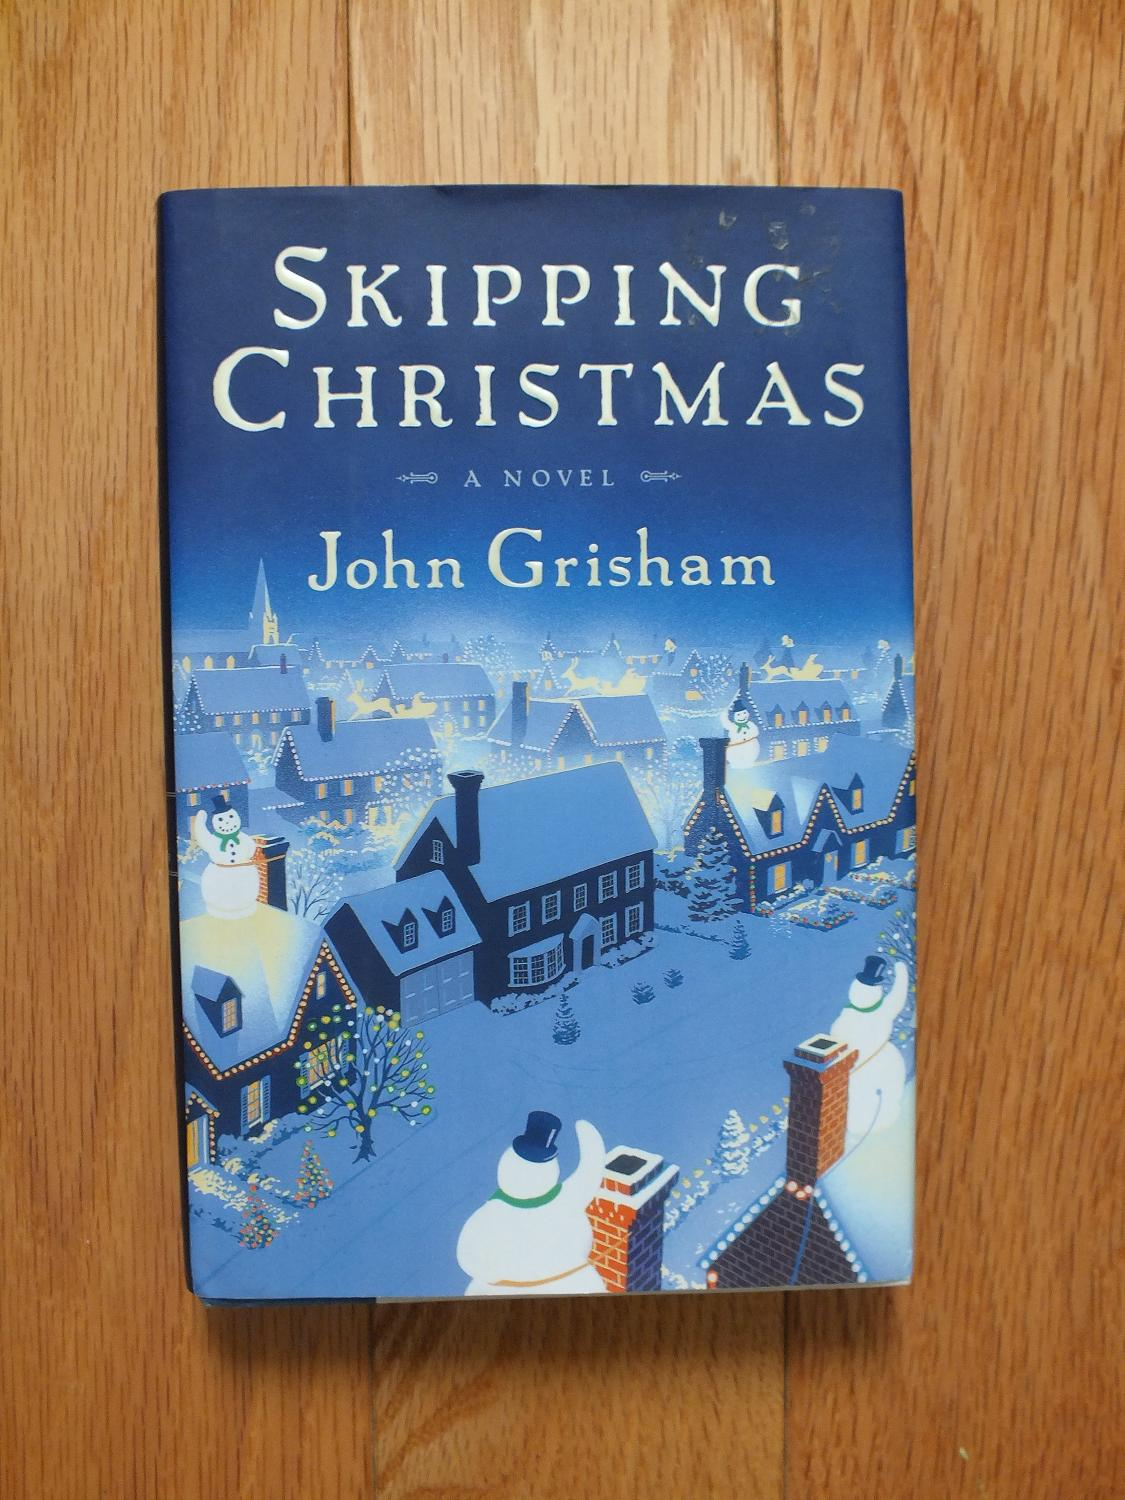 best skipping christmas by john grisham hard cover for sale in dollard des ormeaux quebec for 2018 - Skipping Christmas